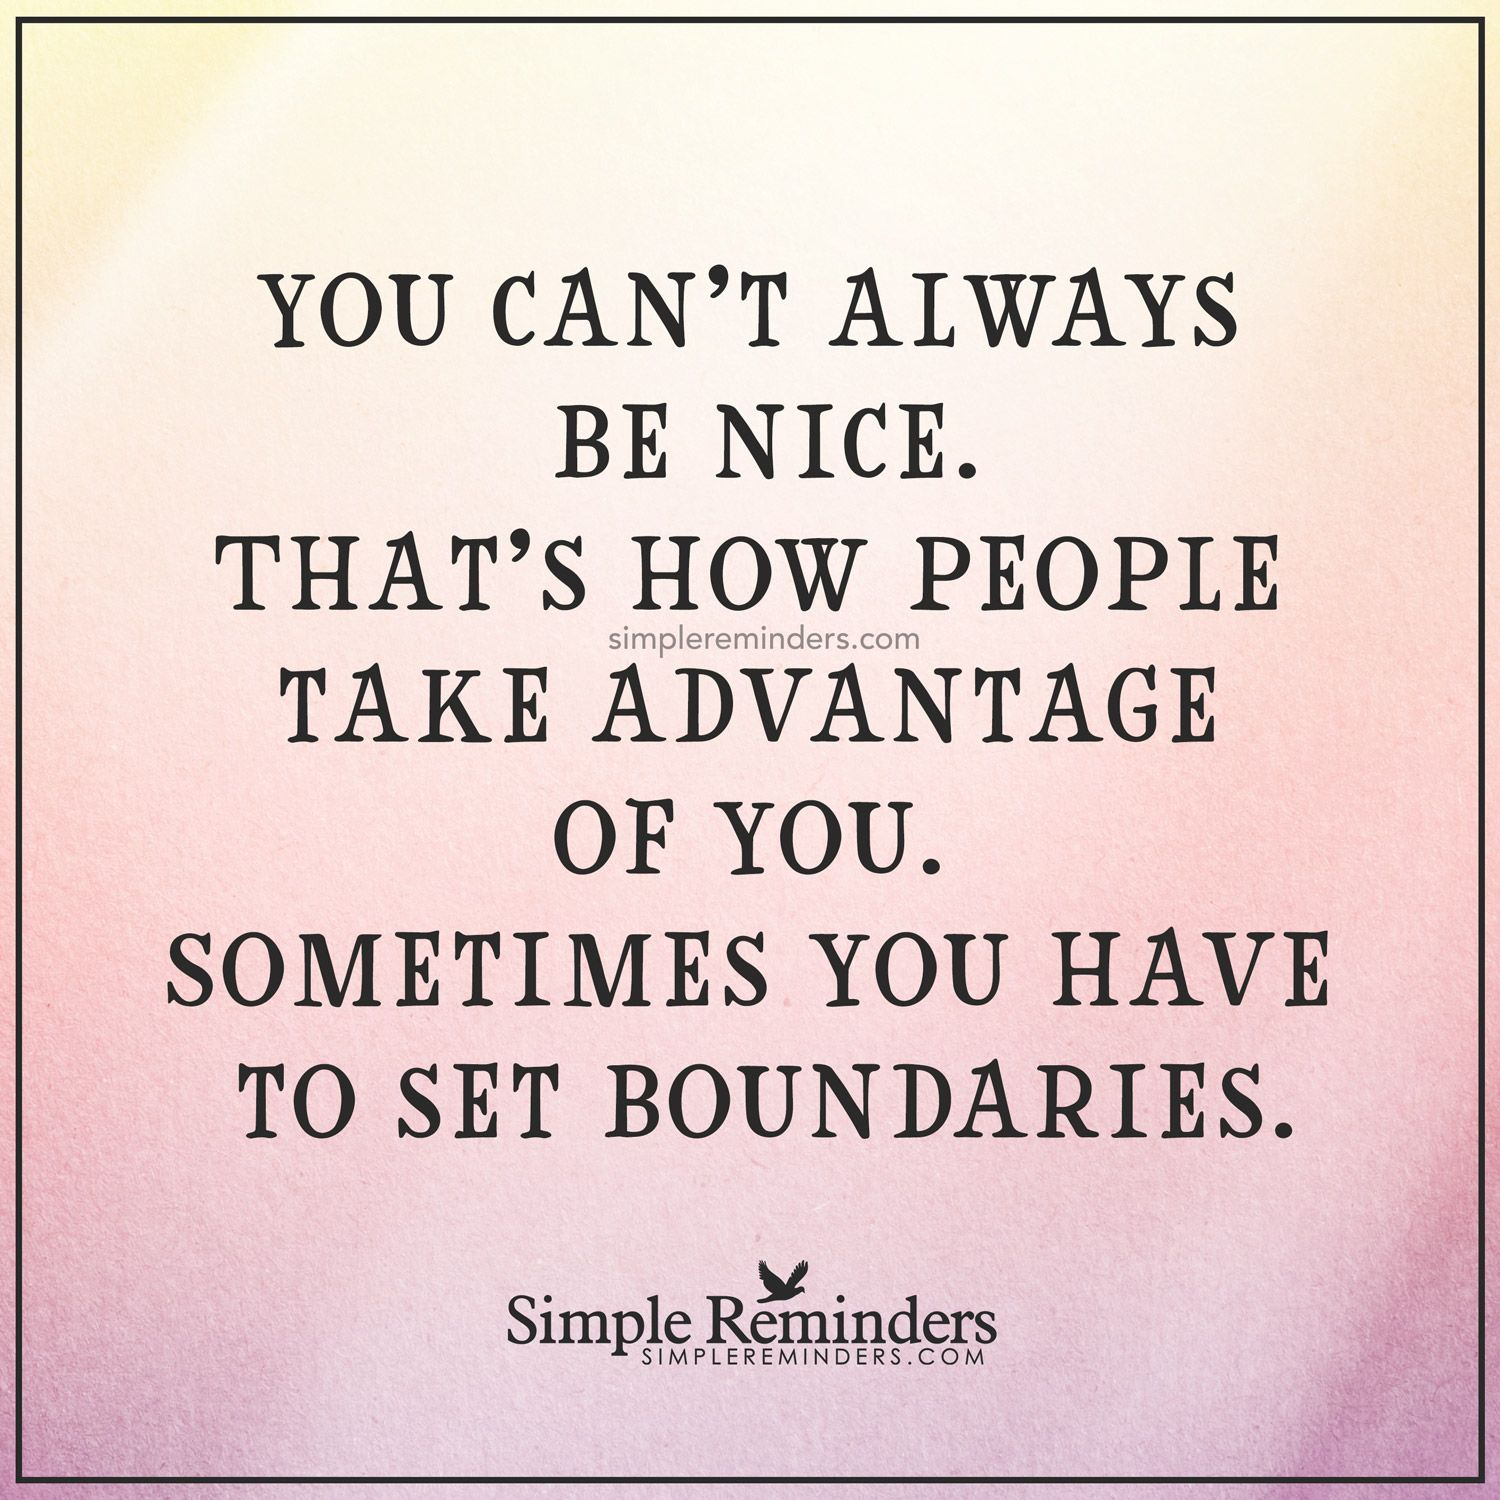 Set boundaries You can't always be nice. That's how people take